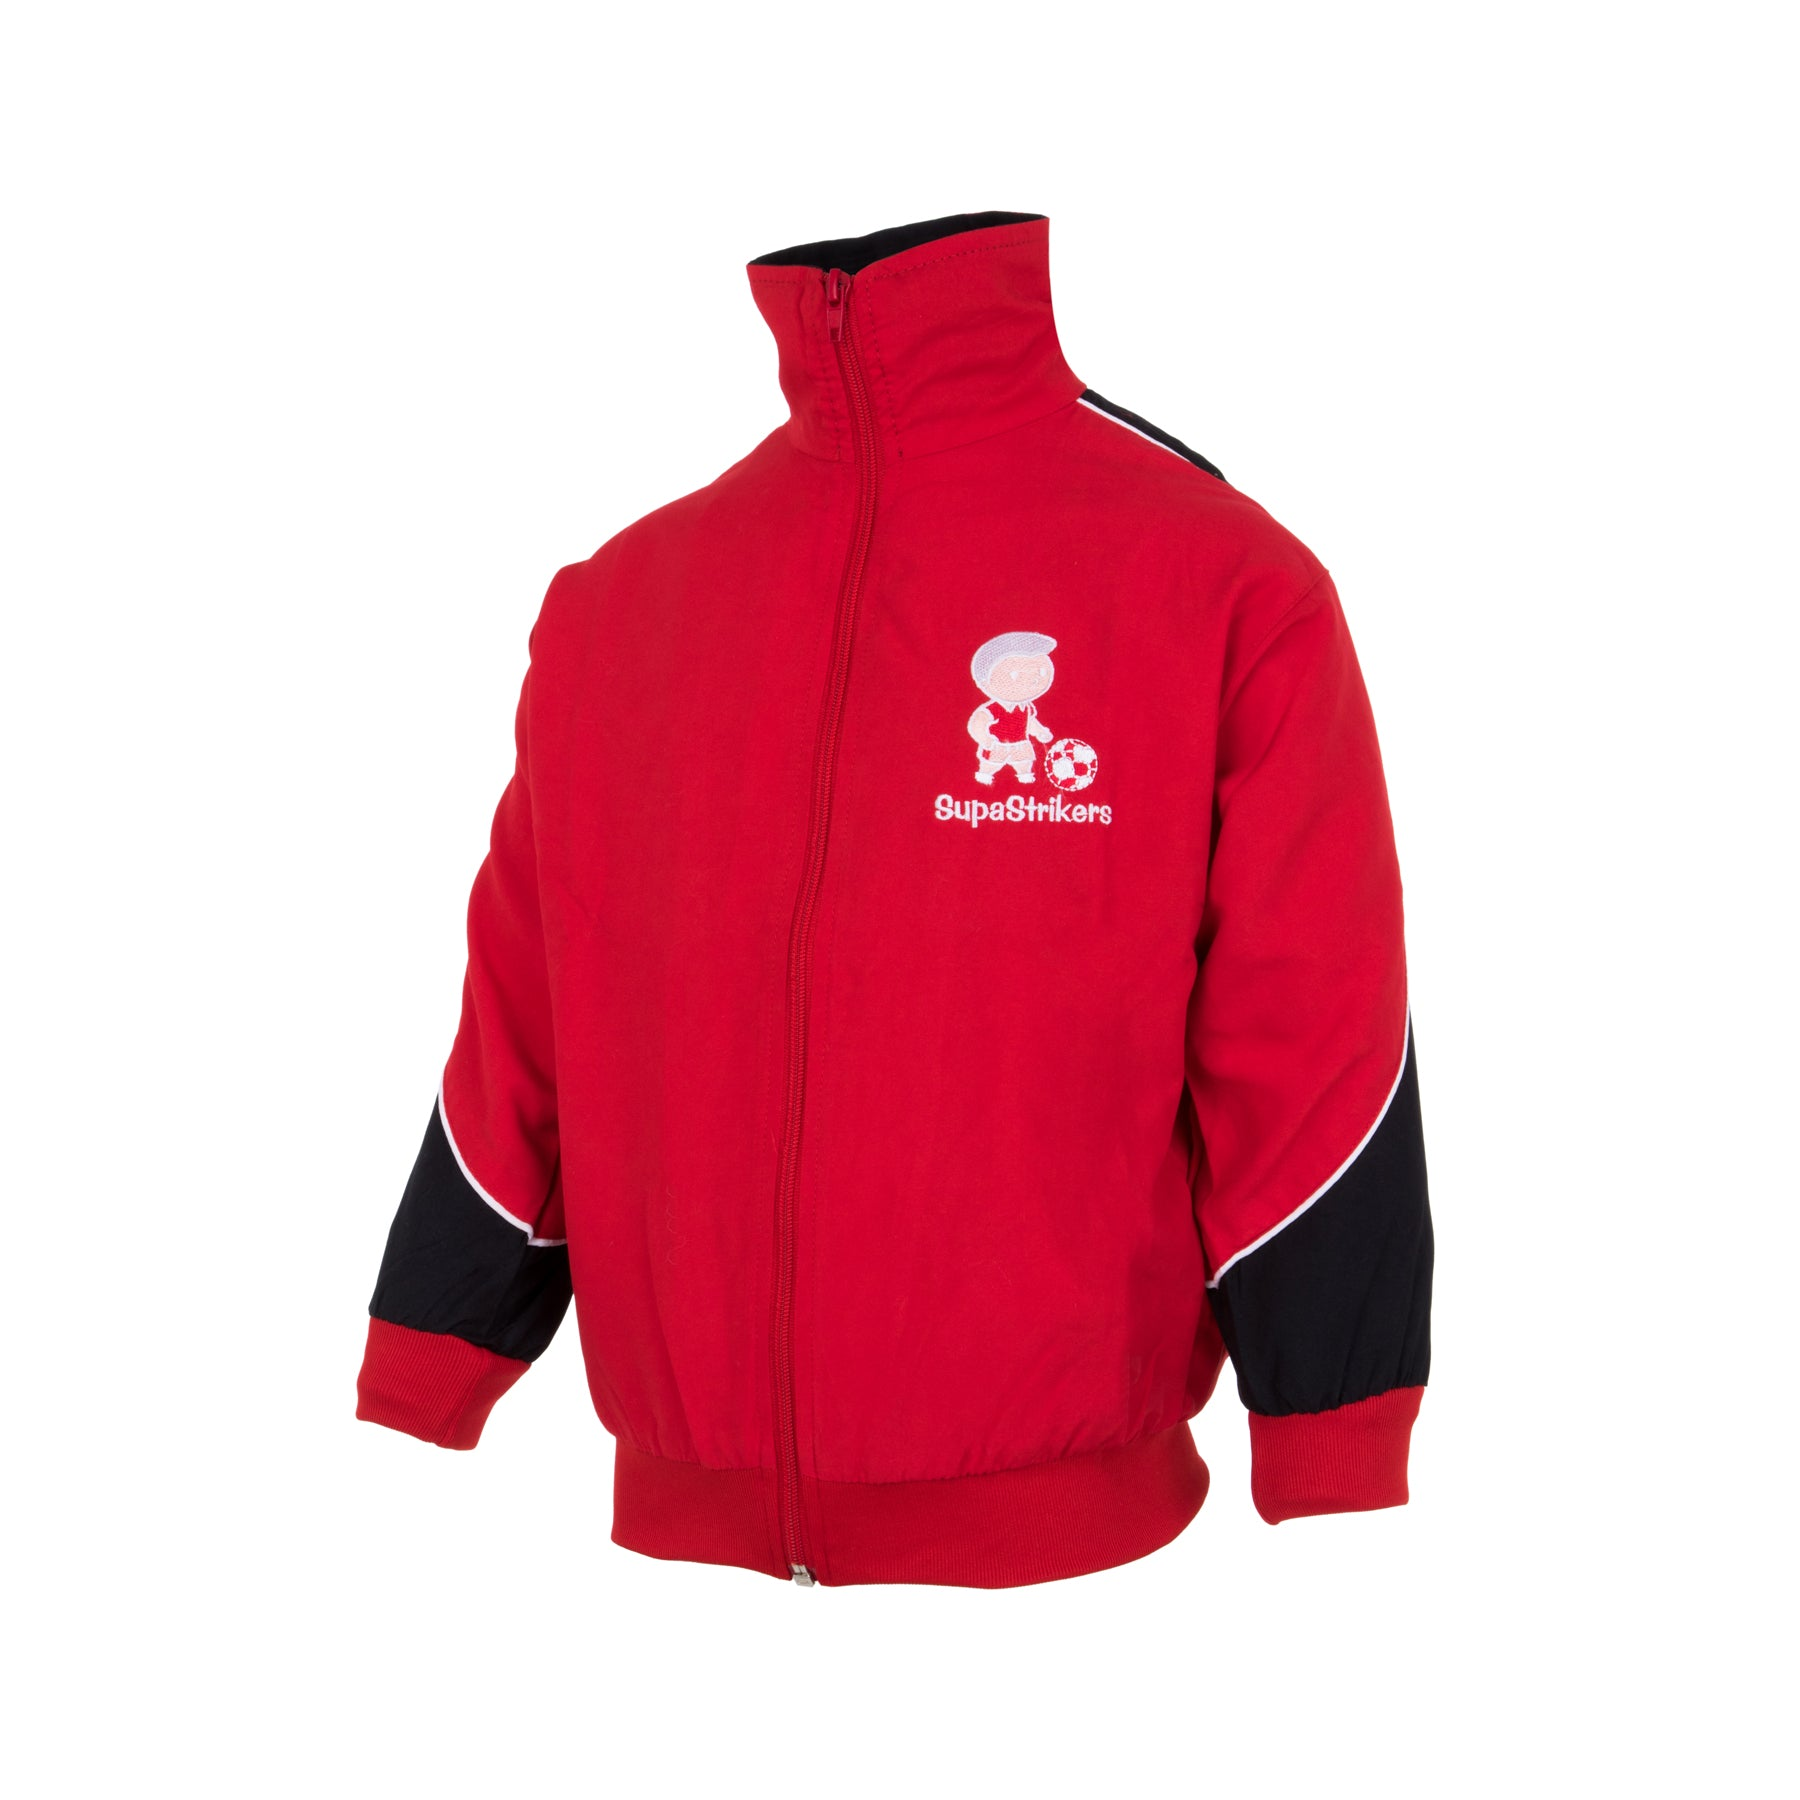 Pre-school football training jacket